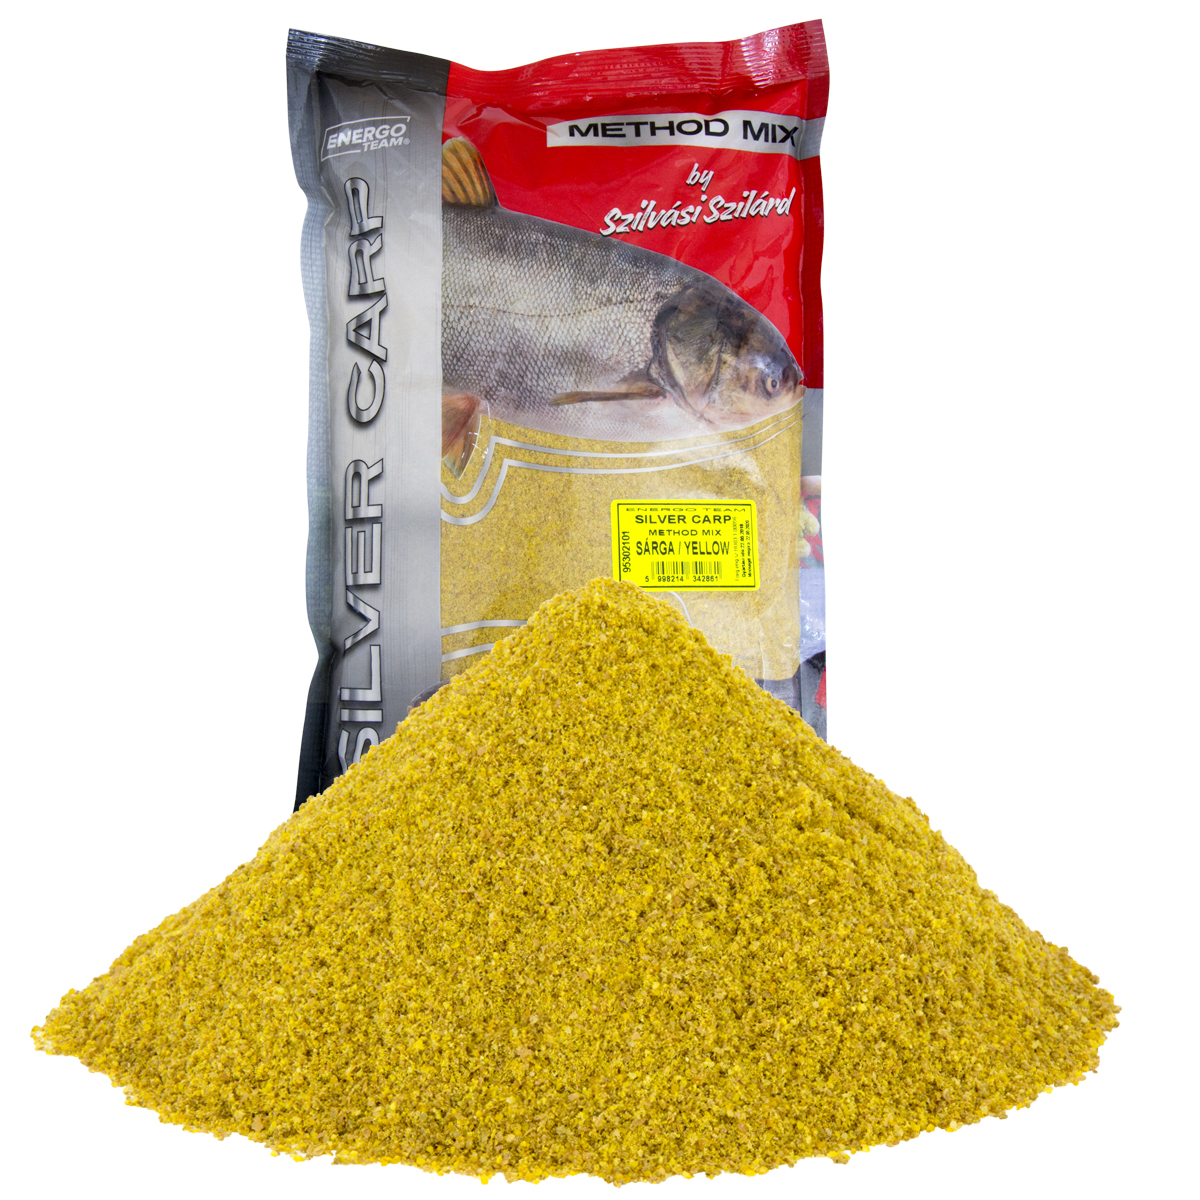 SILVER CARP 1KG METHOD MIX SÁRGA